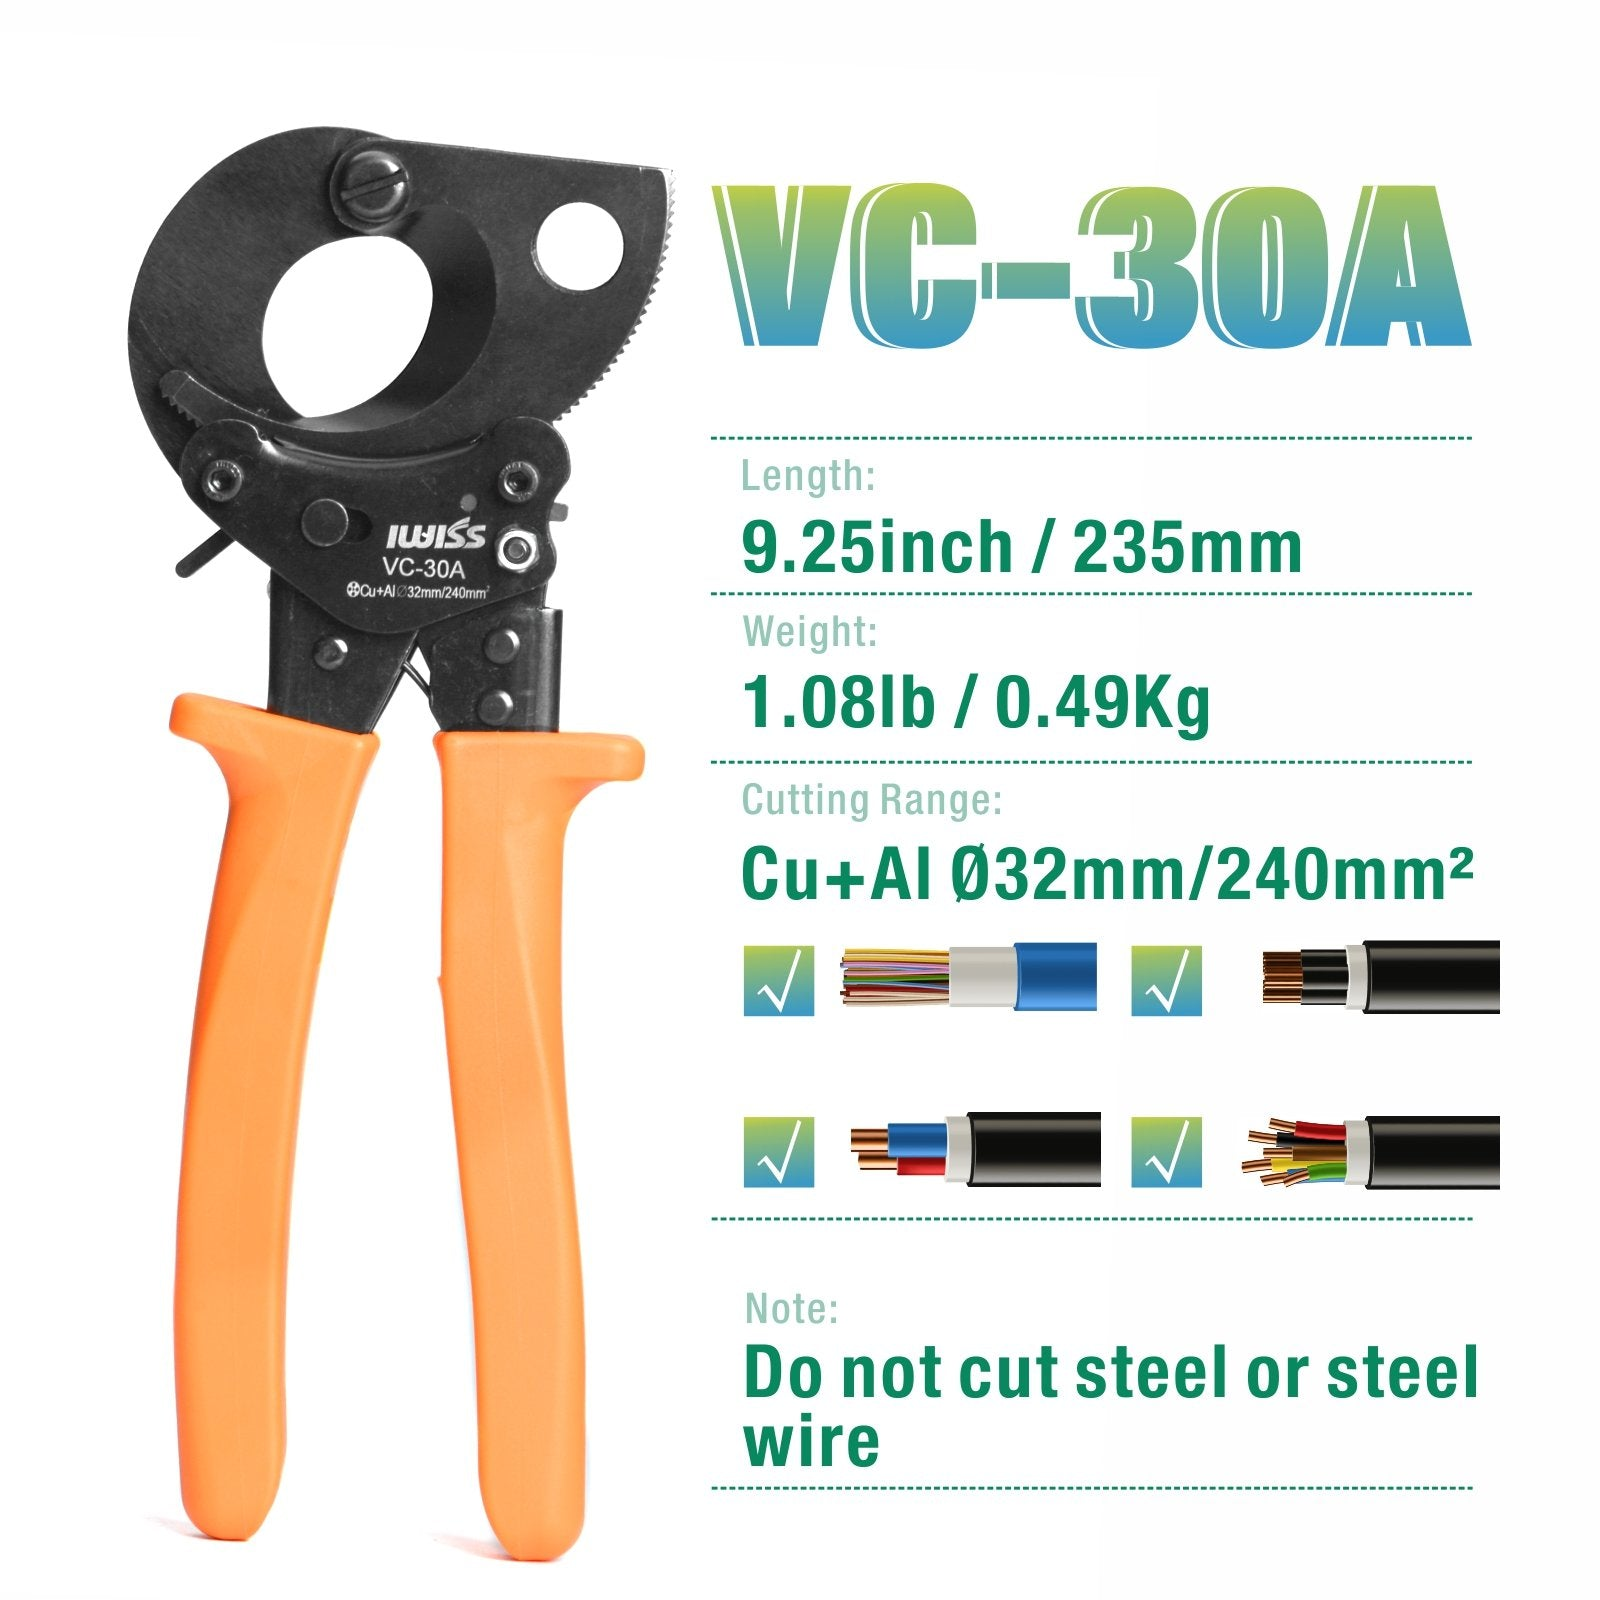 Ratechet Copper&Aluminum Cable Cutter Up To 240mm²/dia 32mm